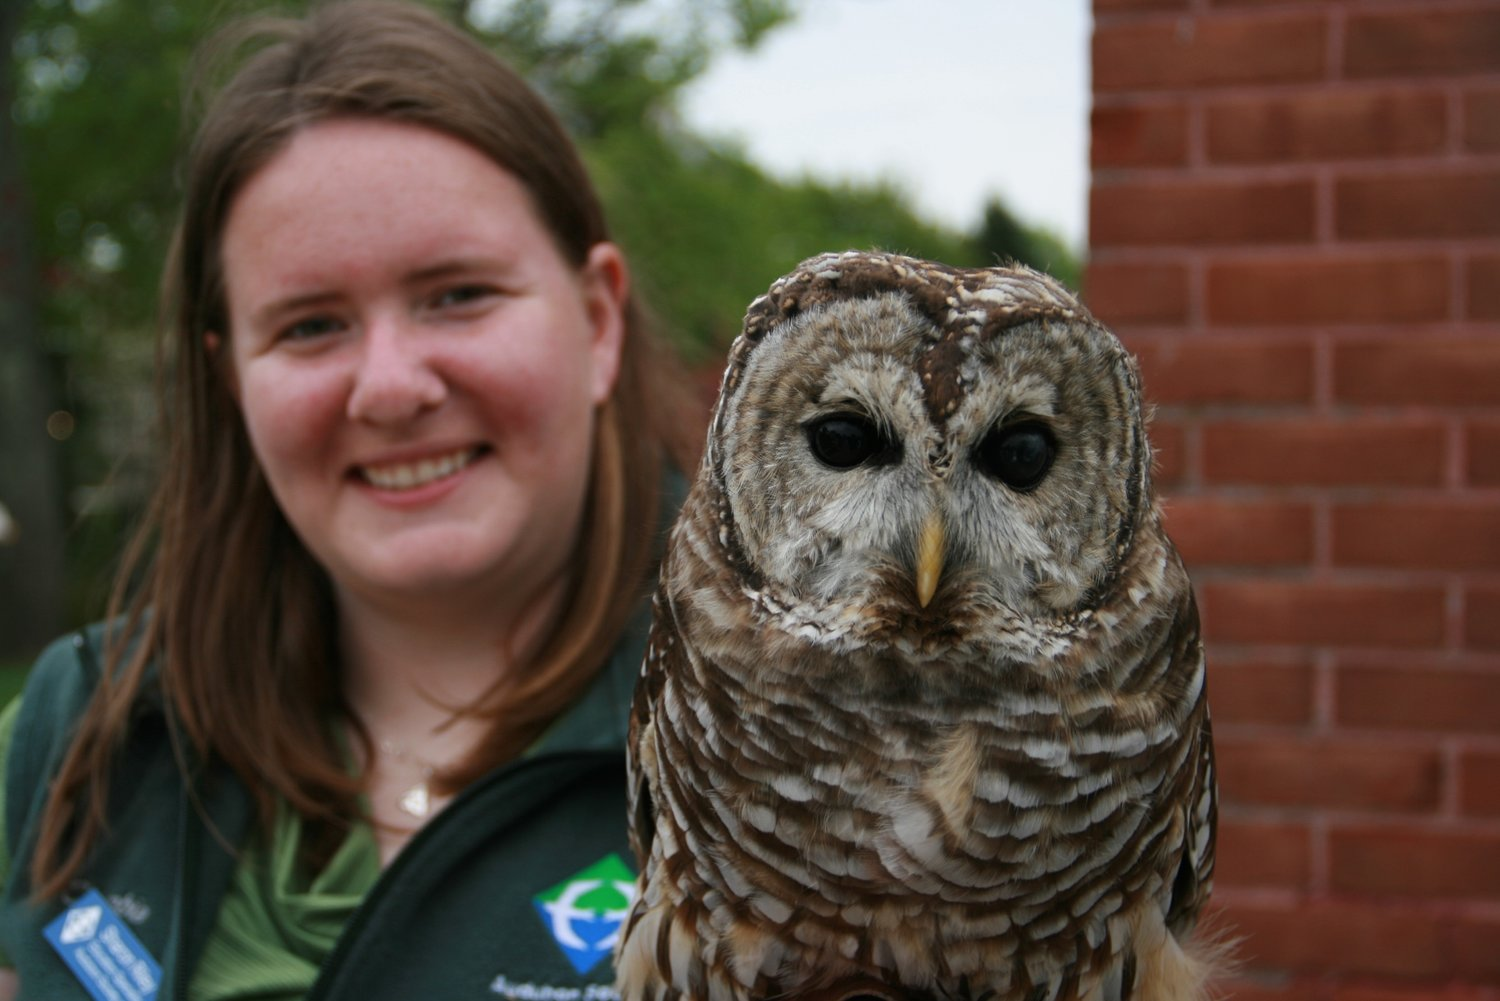 Audubon Educator Sharon Riley introduces a Barred Owl during an Audubon family program.